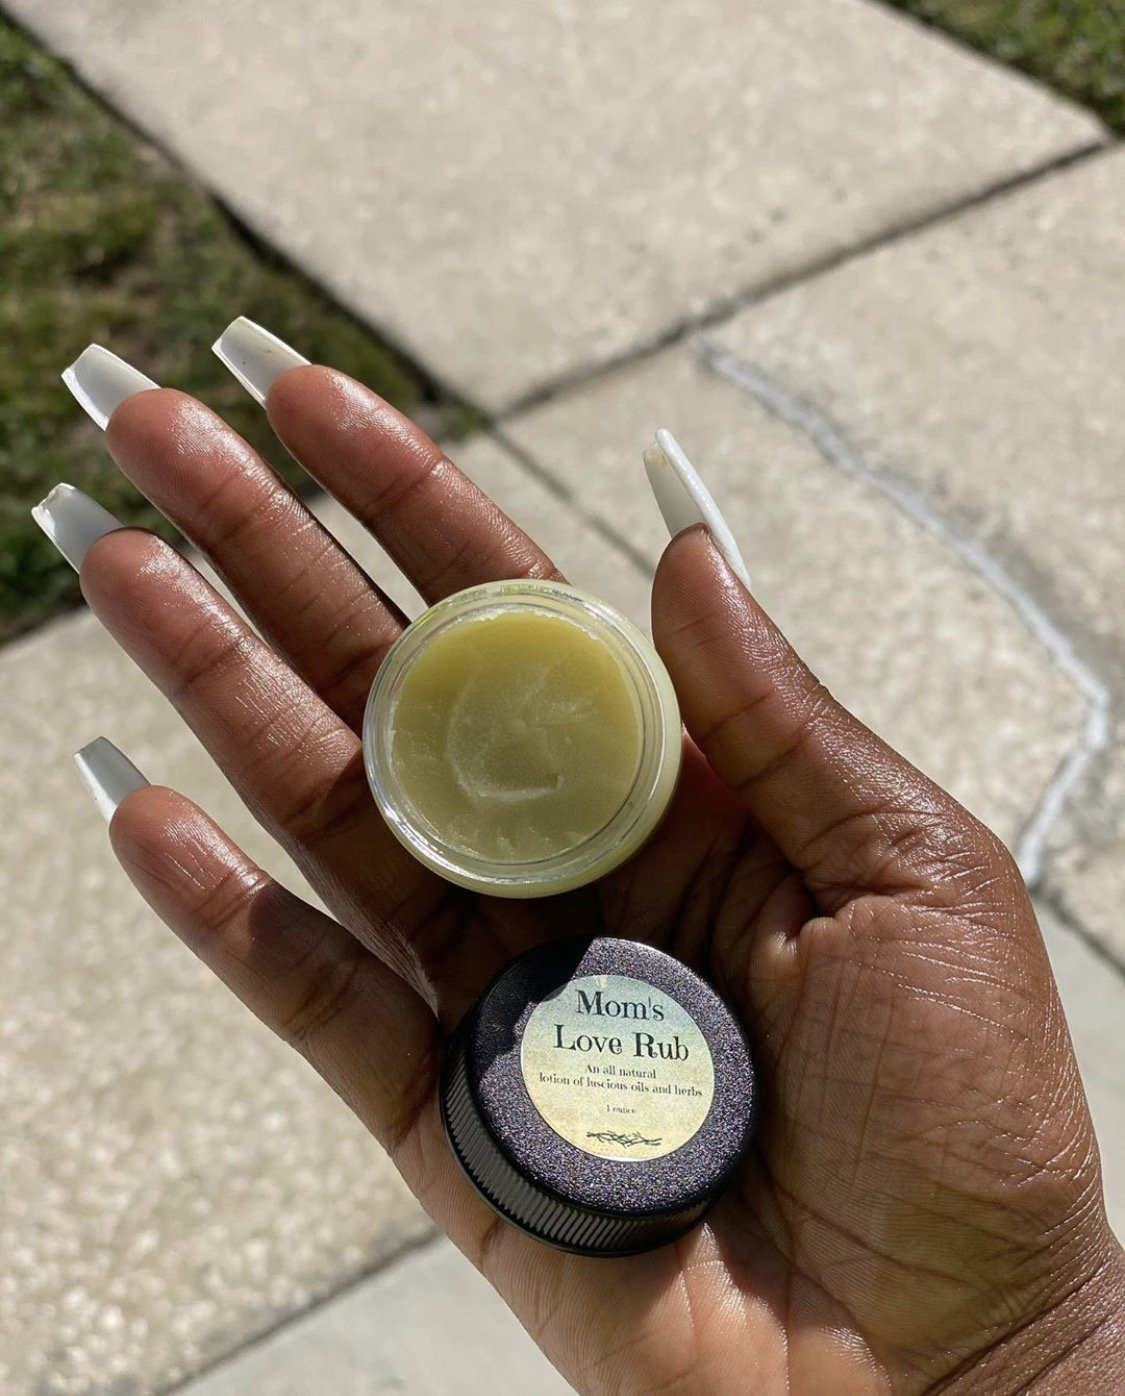 Why Mom's Love Rub uses Shea butter and why you should too!